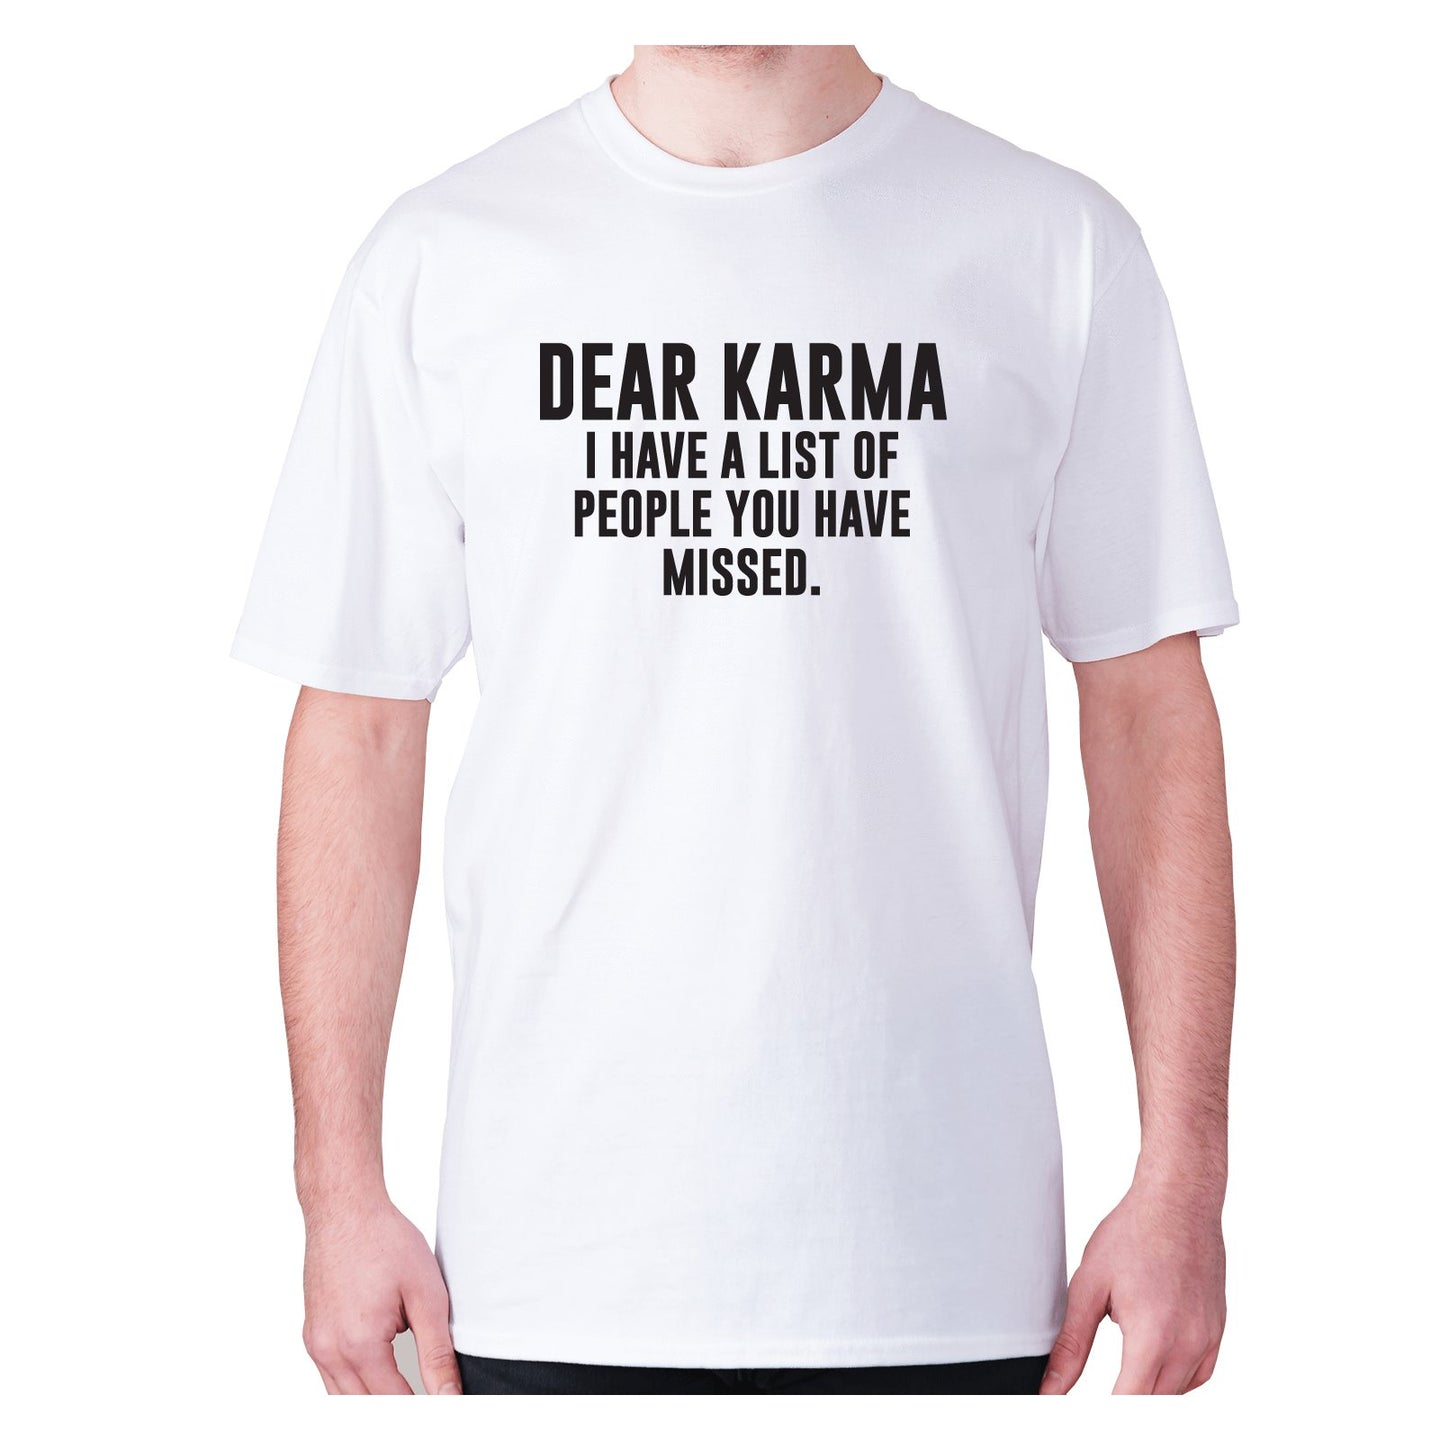 Dear Karma I have a list of people you have missed - men's premium t-shirt - White / S - Graphic Gear